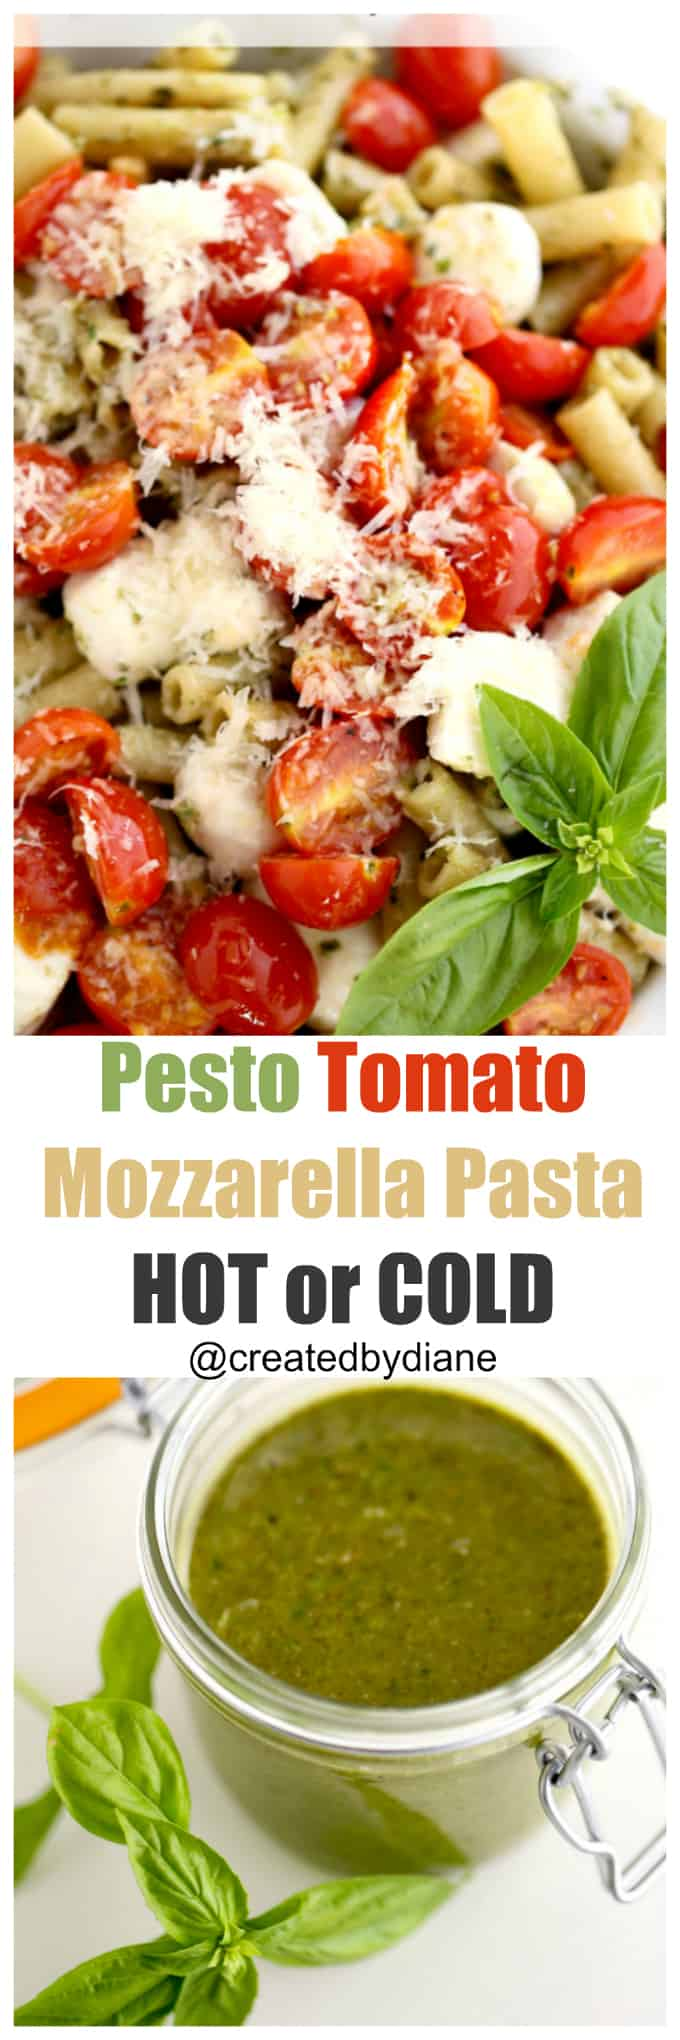 Pesto Tomato Mozzarella Pasta Hot or cold pasta salad @createdbydiane